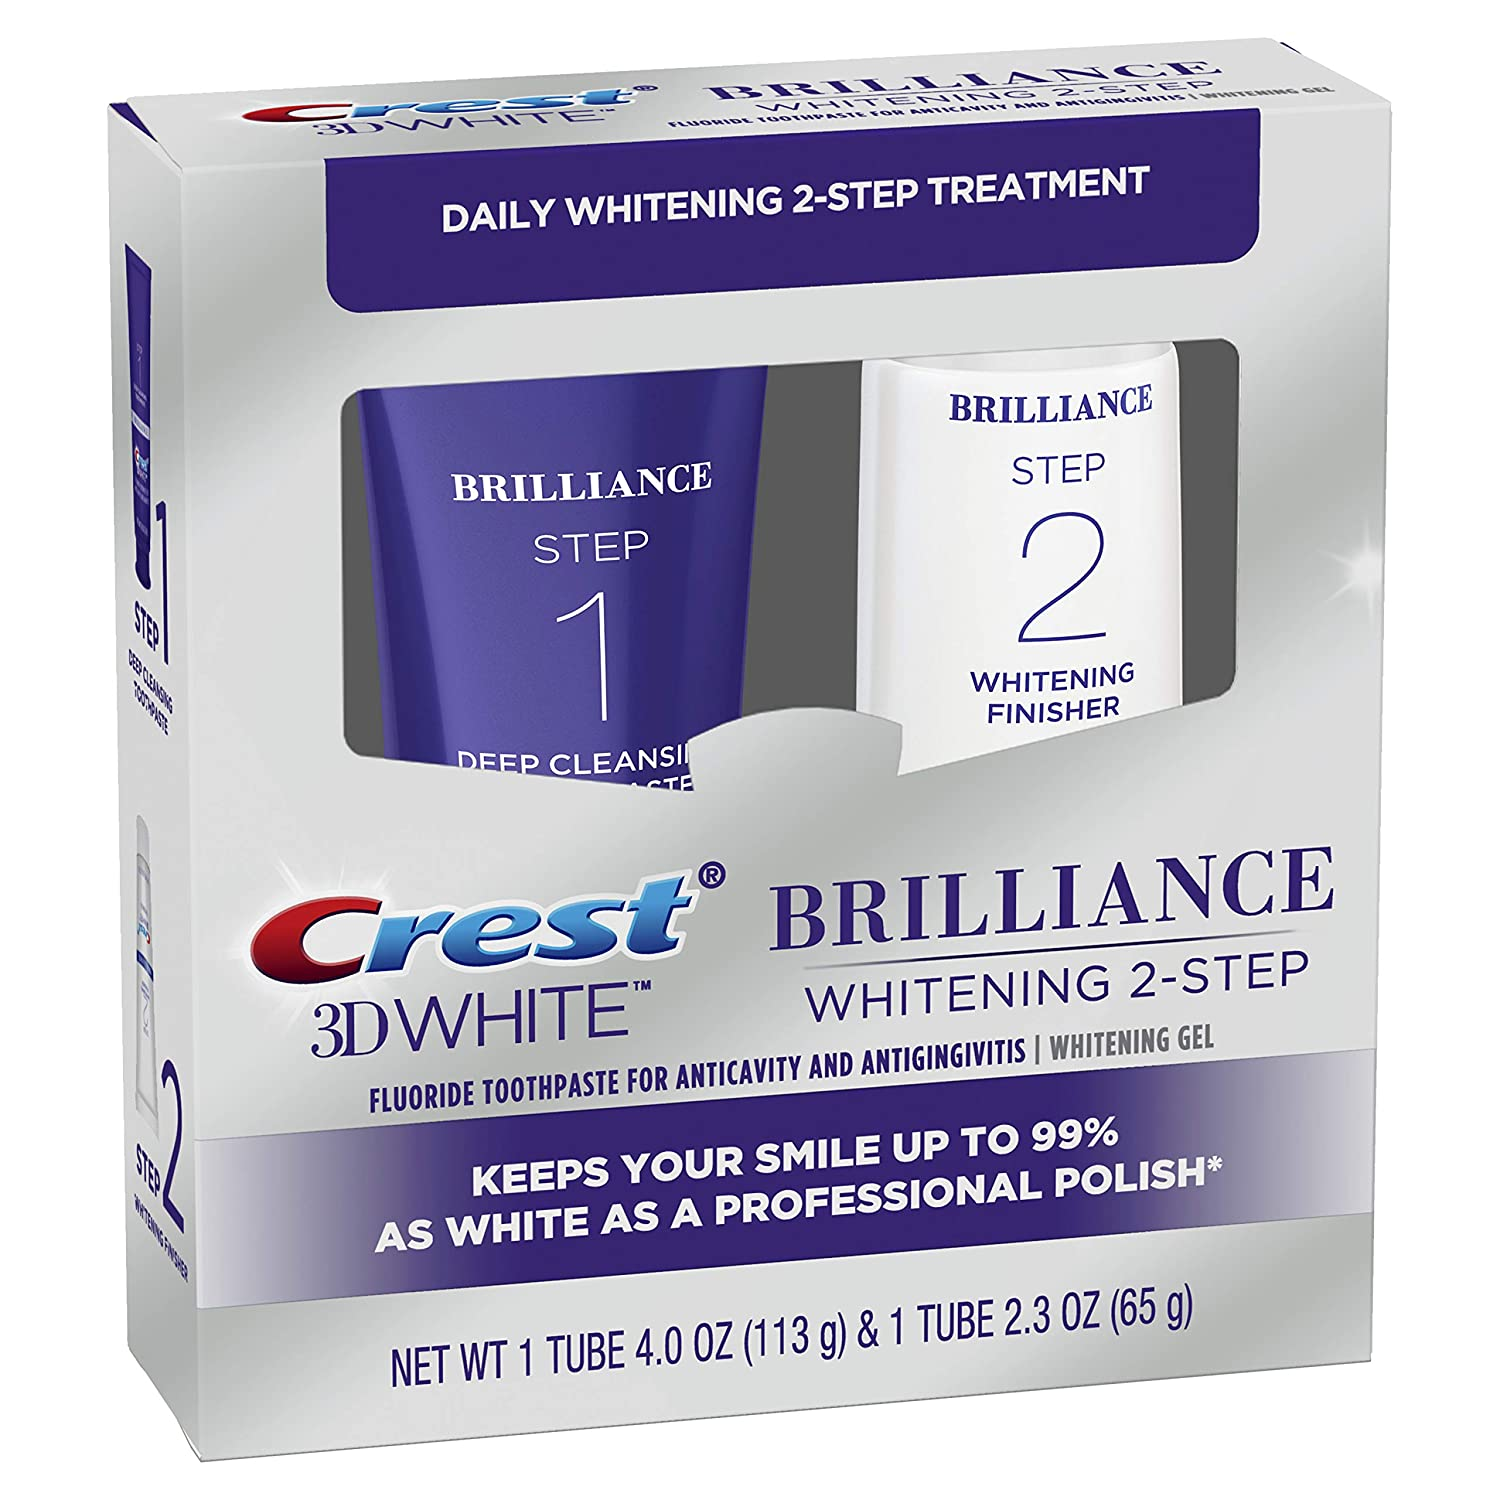 Crest 3D White Brilliance Two-step (10)